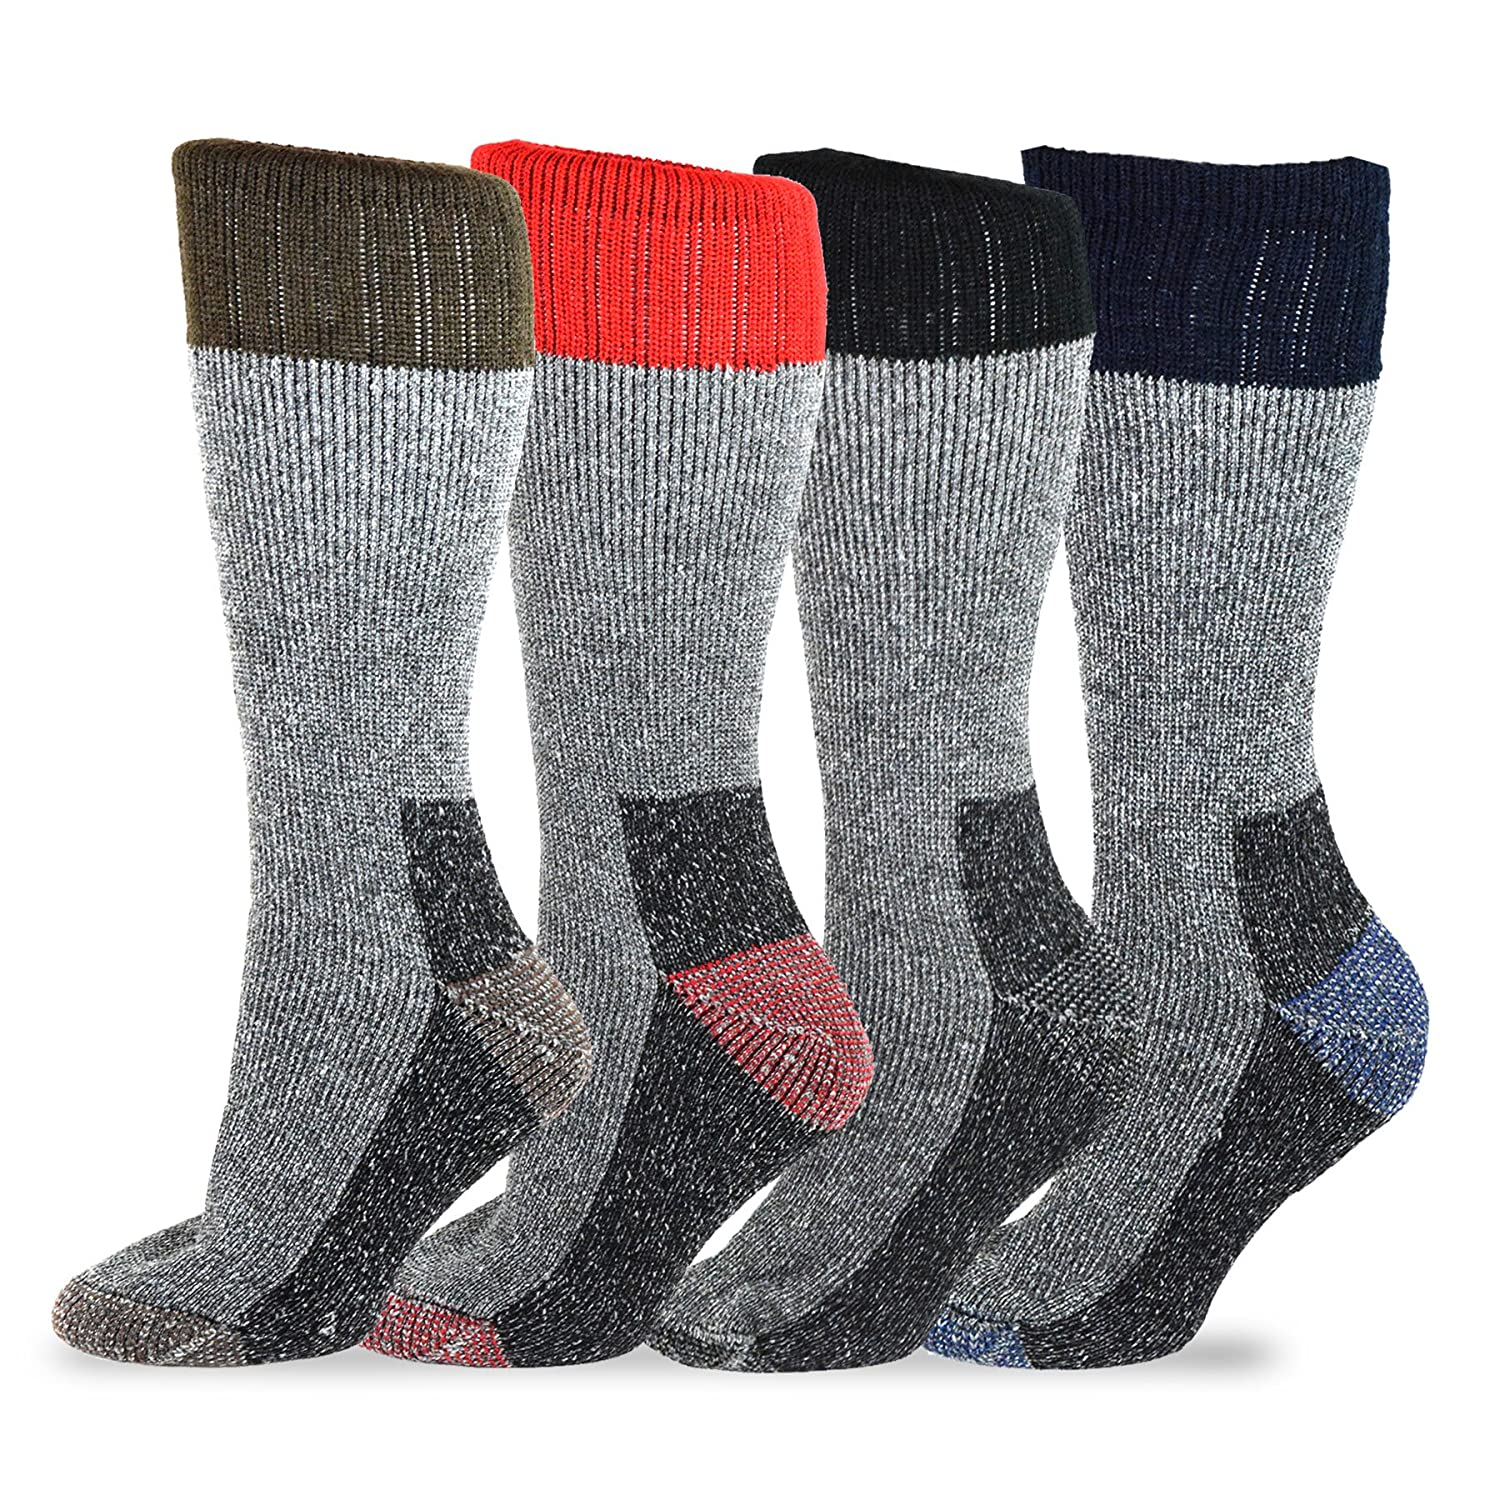 TeeHee Heavyweight Outdoor Wool Thermal Boot Socks 4-Pack Assorted) Soxnet Inc S/51078-4W07 10-13